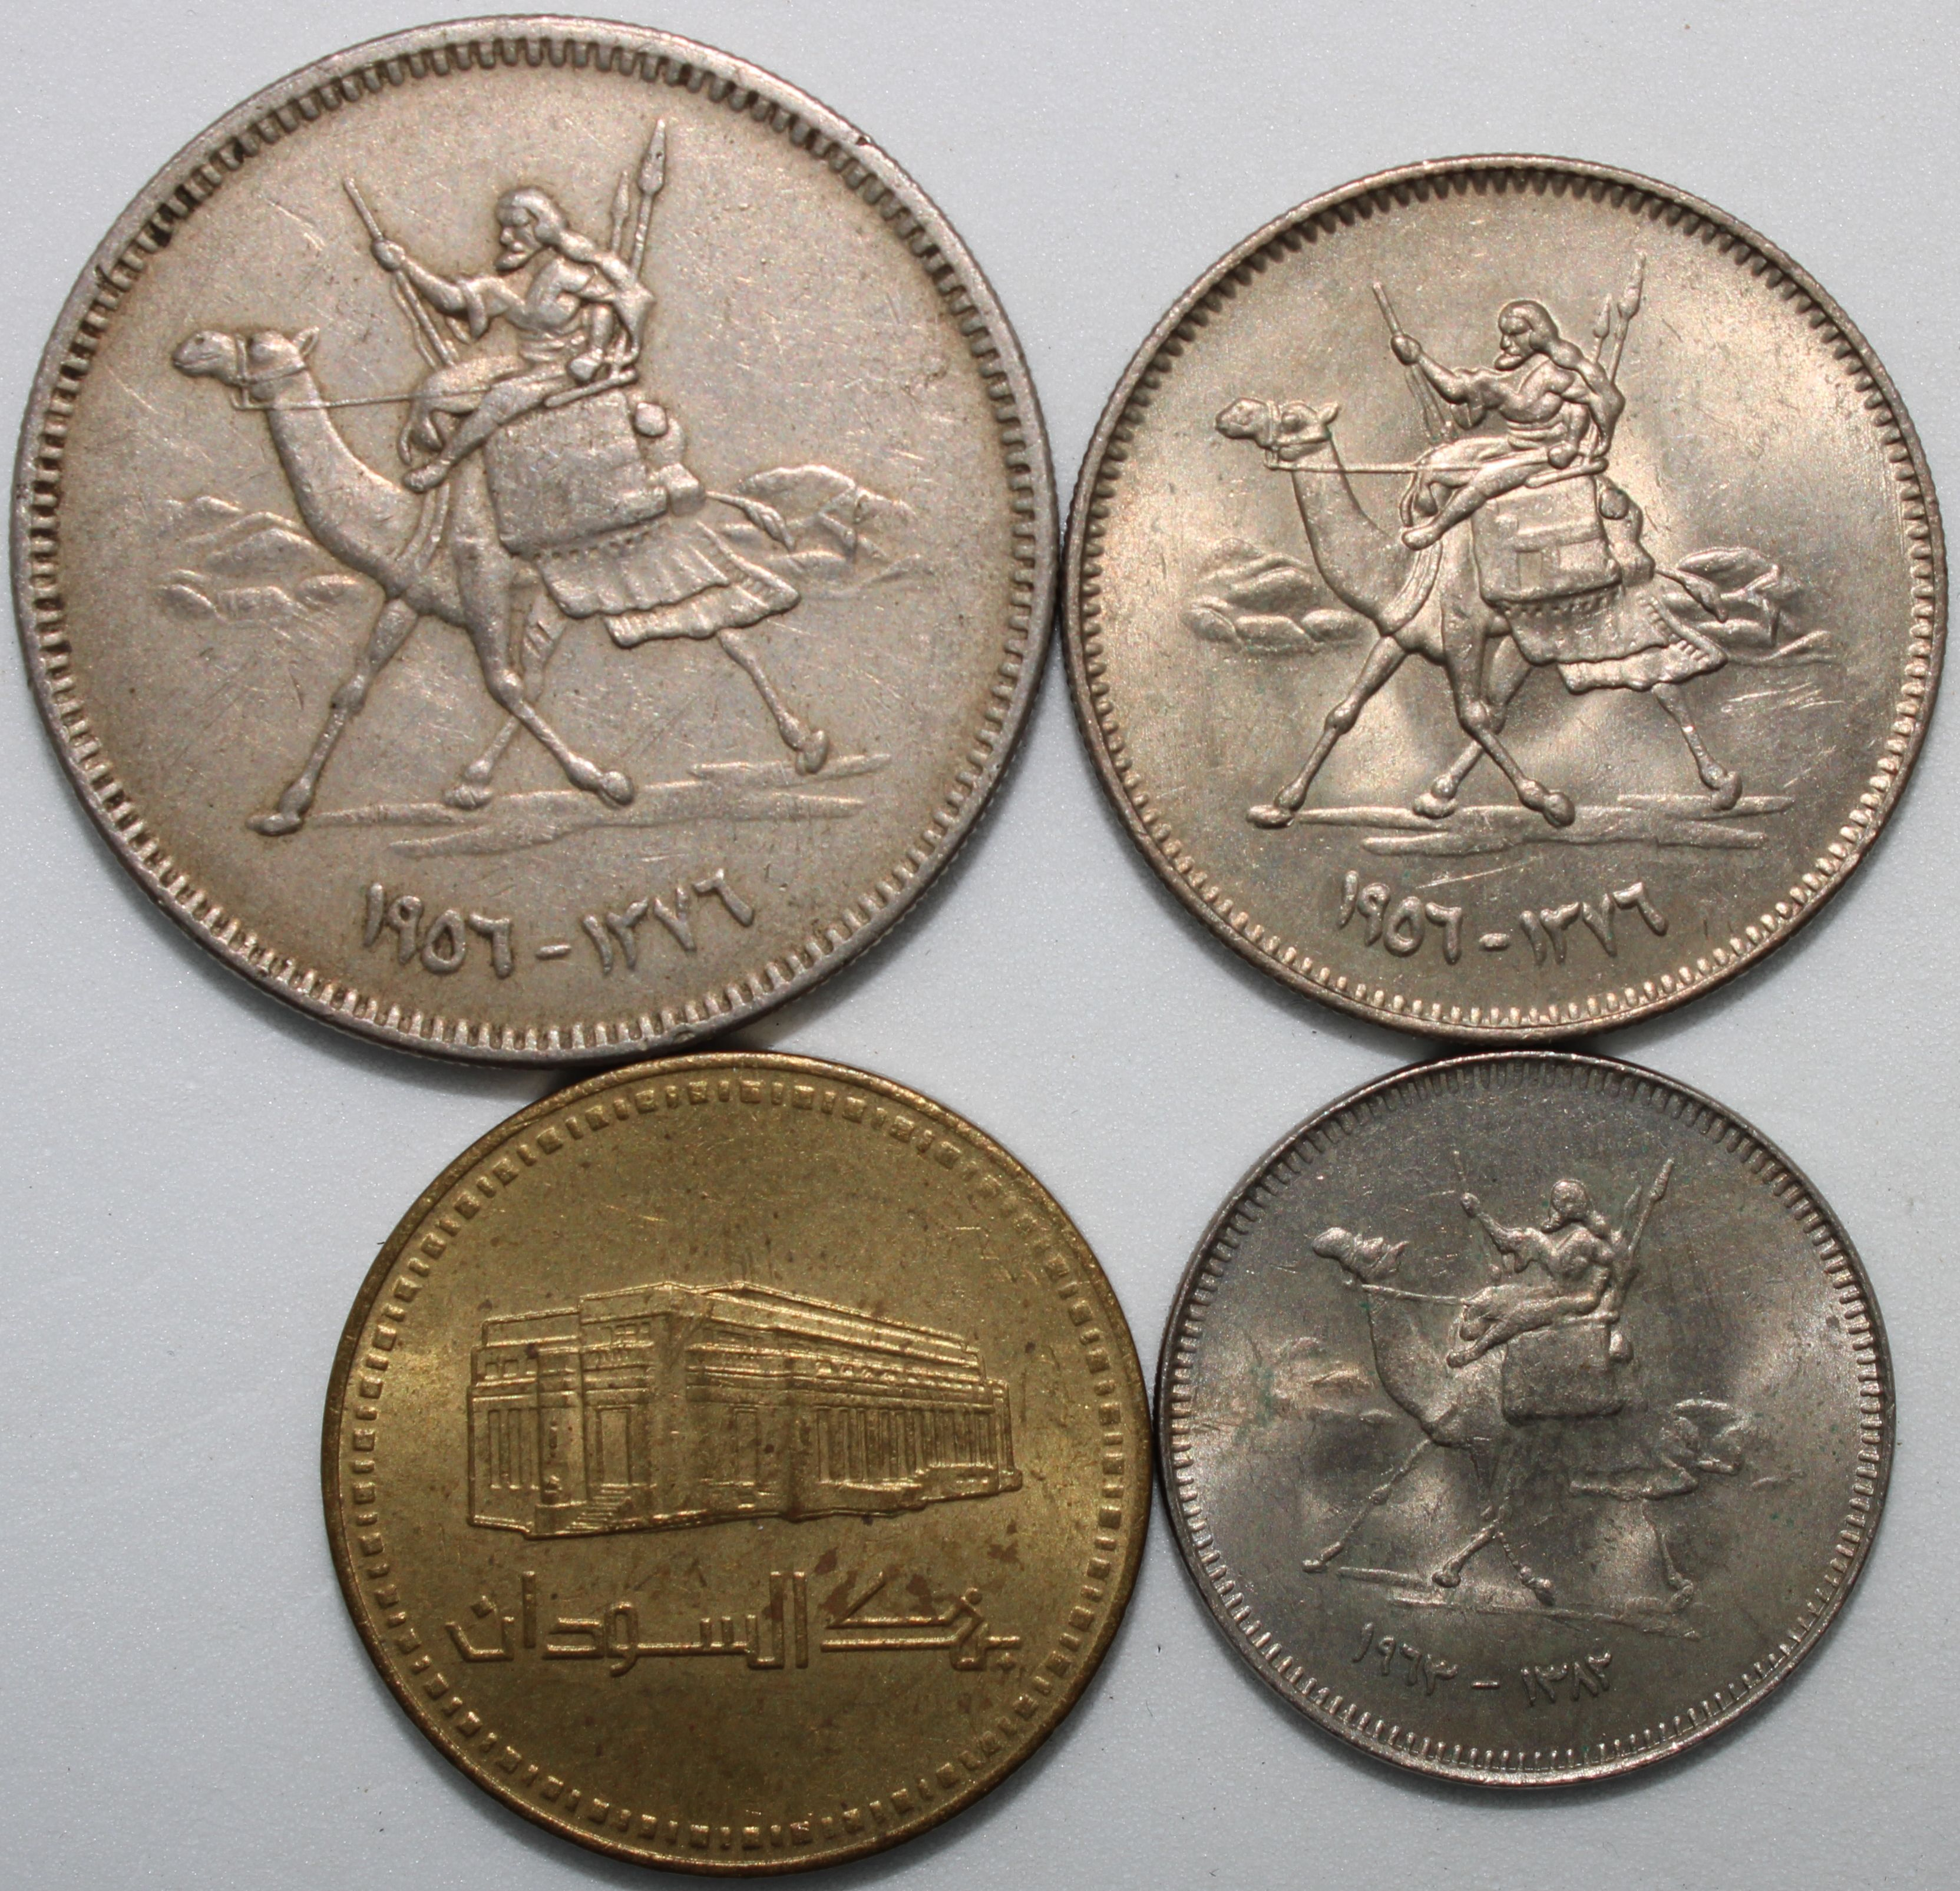 Mix Of Sudan Coins Bulk Coins Km Coins With Images Coins